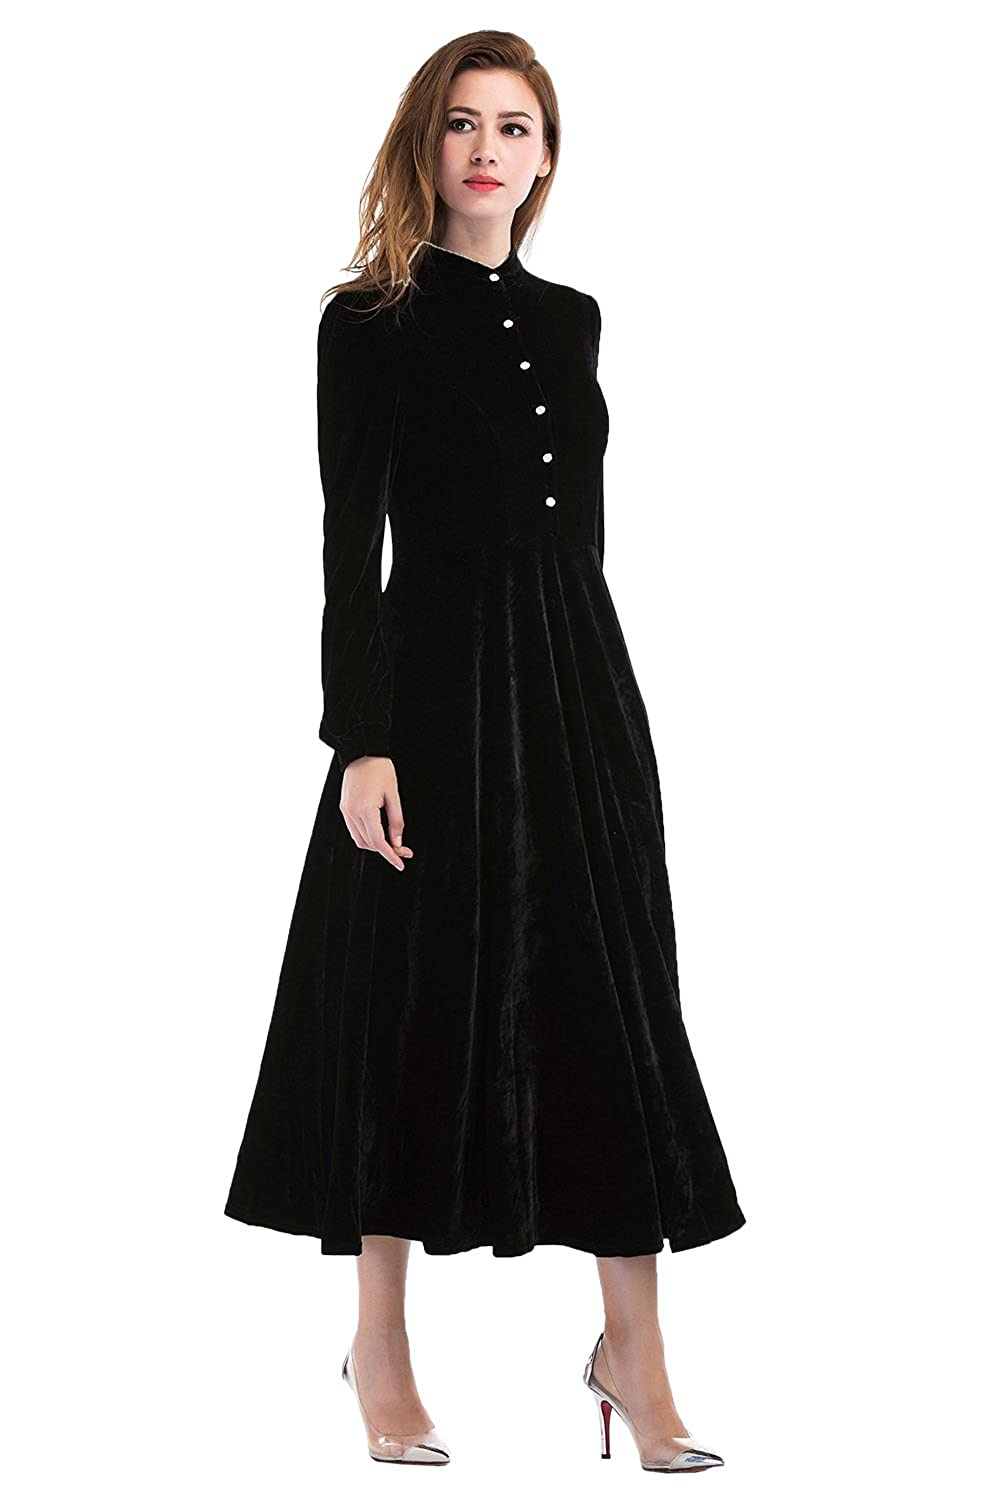 309b2ae9a8b4e2 DRESS STYLE: Fit & Flare, Button Front Dress, Hemline Midi, Neckline Round  Neck, Sleeve Type Long Sleeve, Pattern Solid, Color Black, Women\'s Size ...